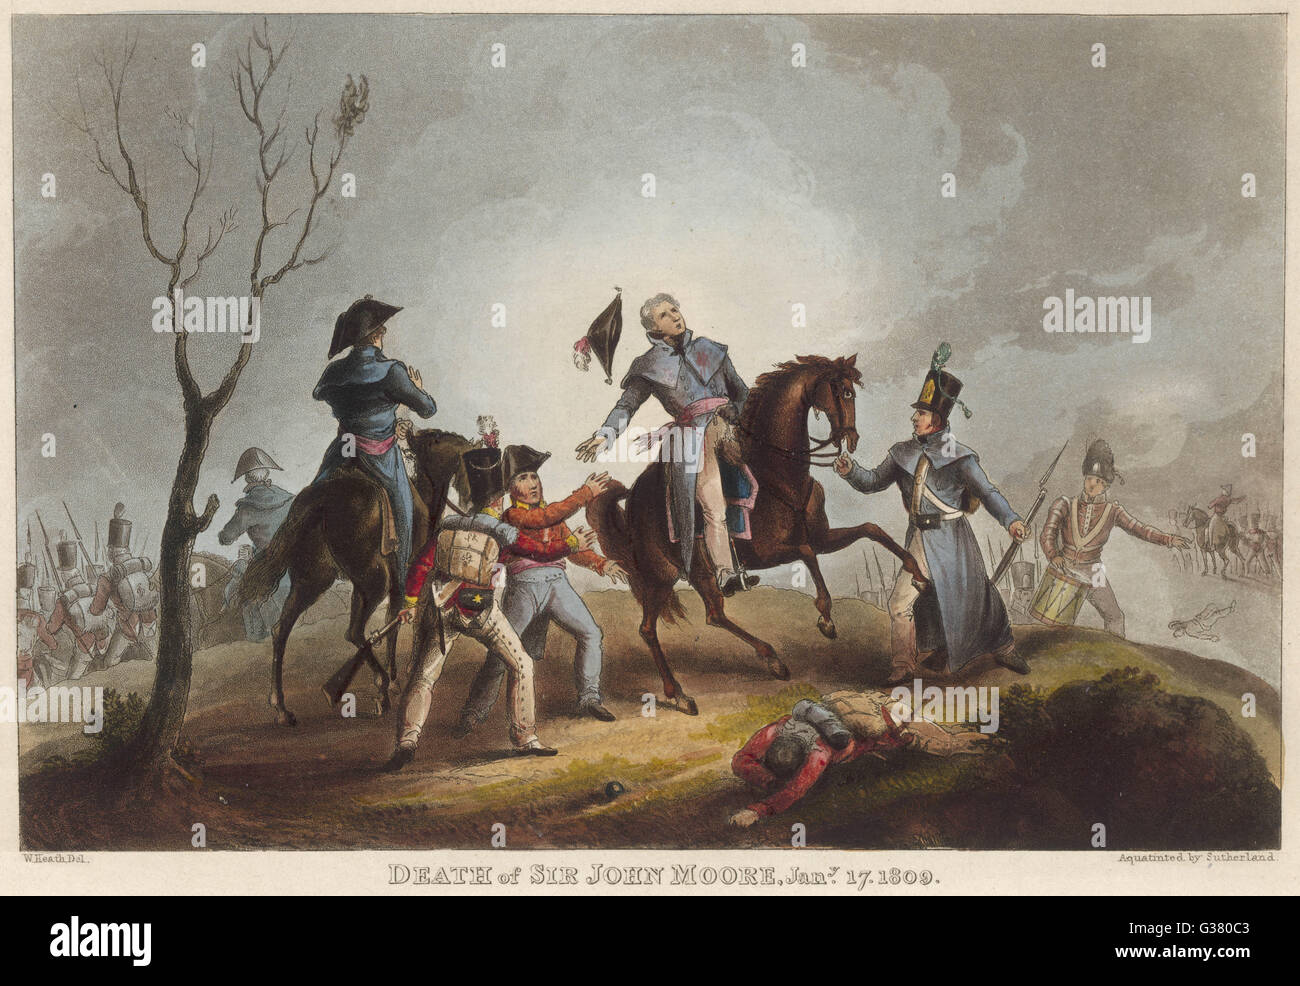 BATTLE OF CORUNNA Sir John Moore successfully  repels the French, enabling  the retreating British to  embark, but - Stock Image